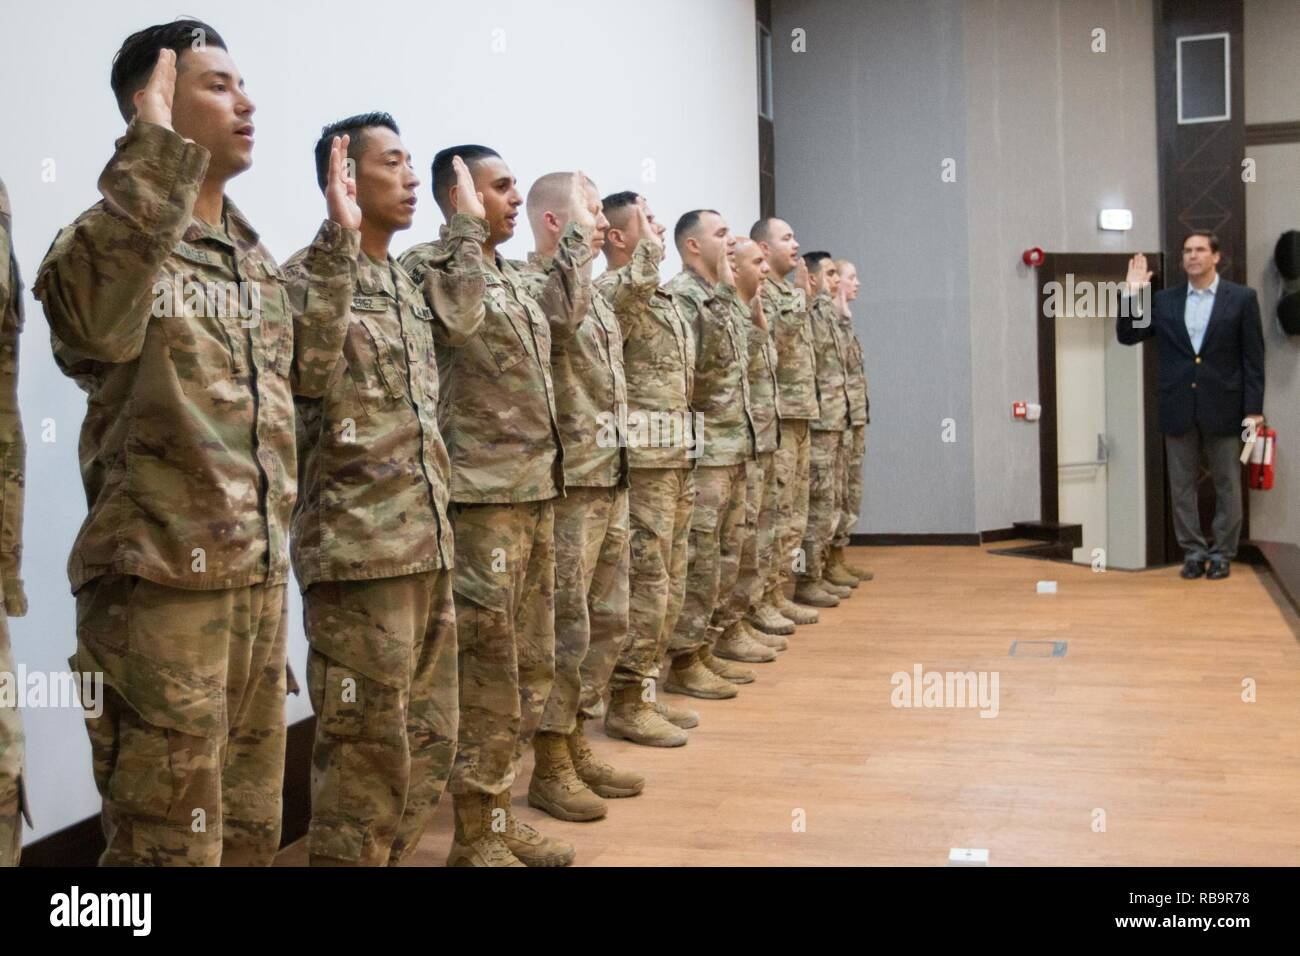 Dr  Mark T  Esper, 23rd Secretary of the Army, gives the